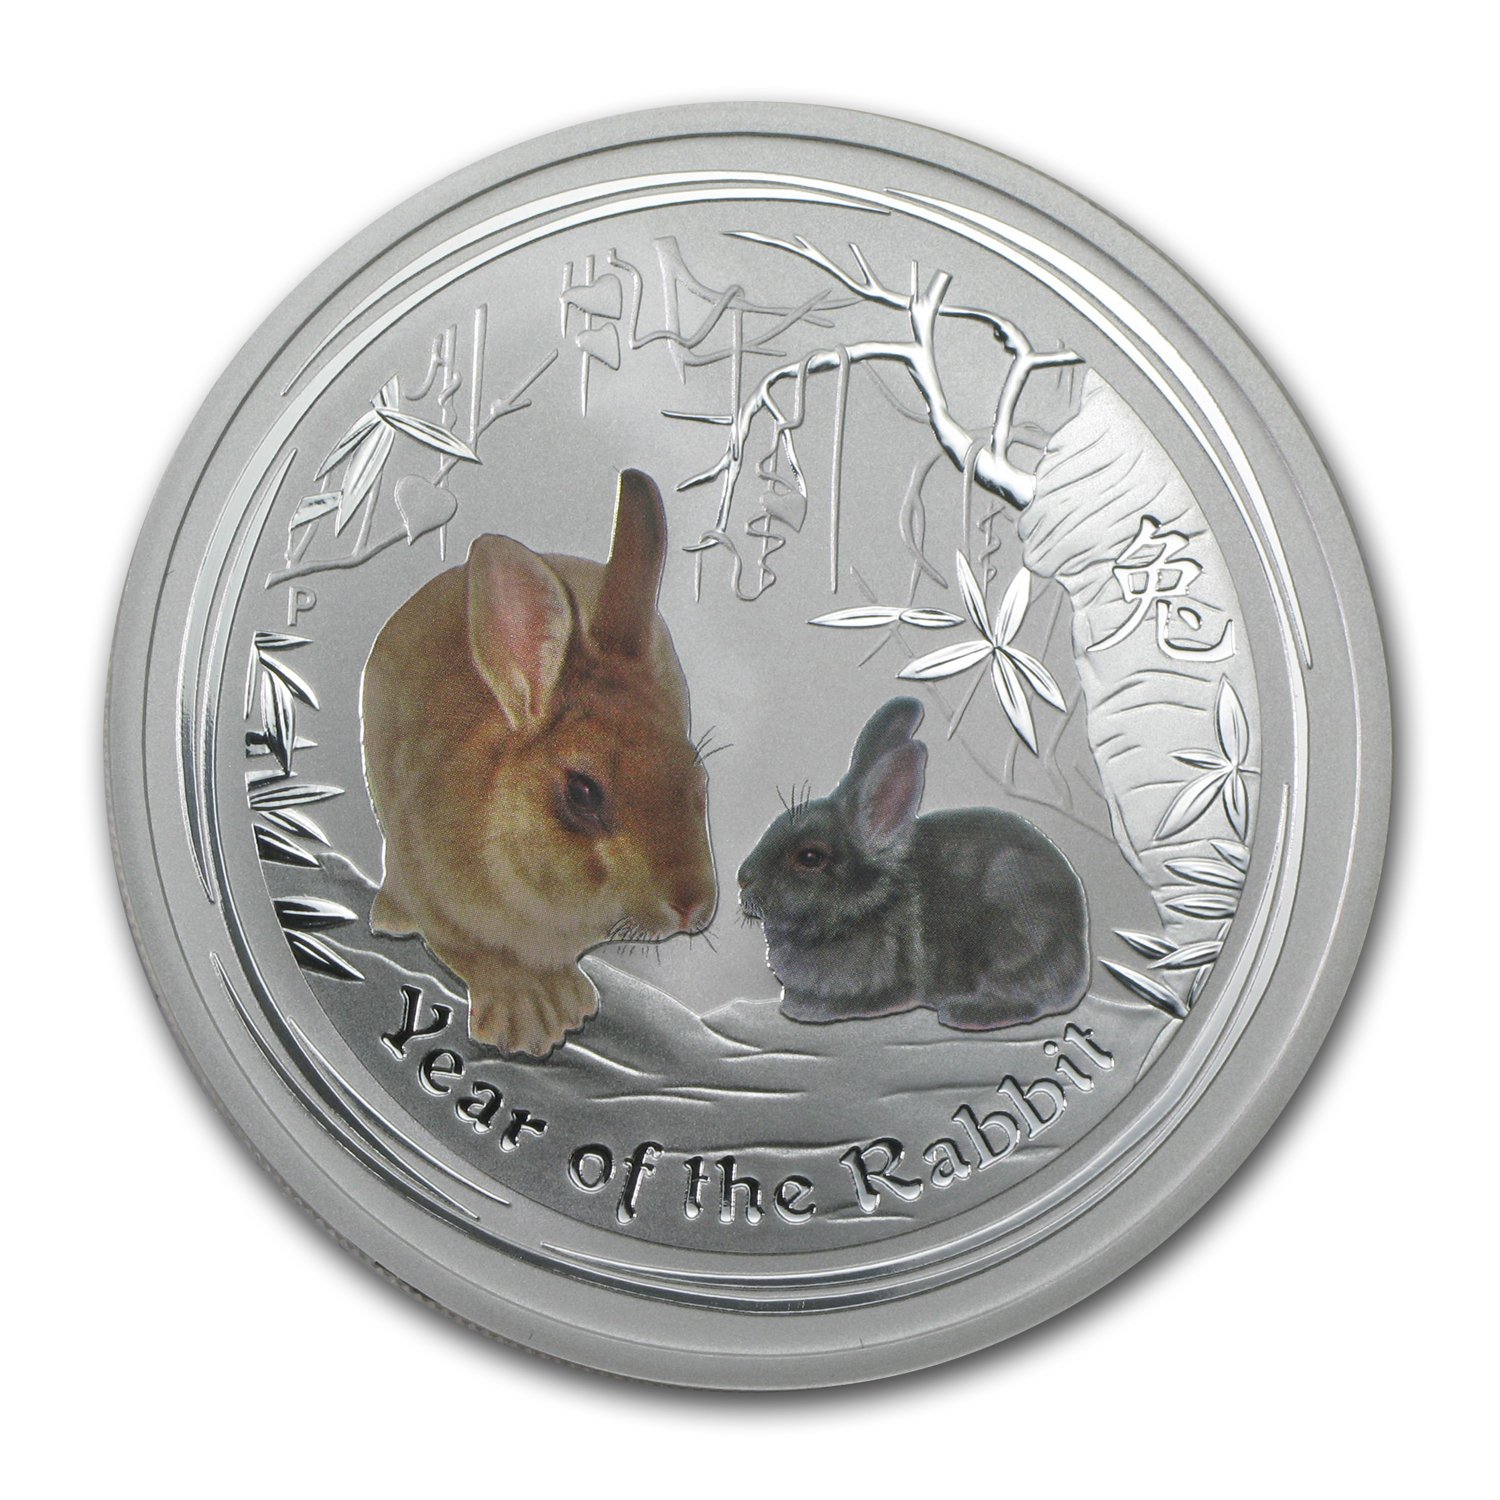 2011 Australia 2 oz Silver Rabbit BU (ANDA, Colorized)